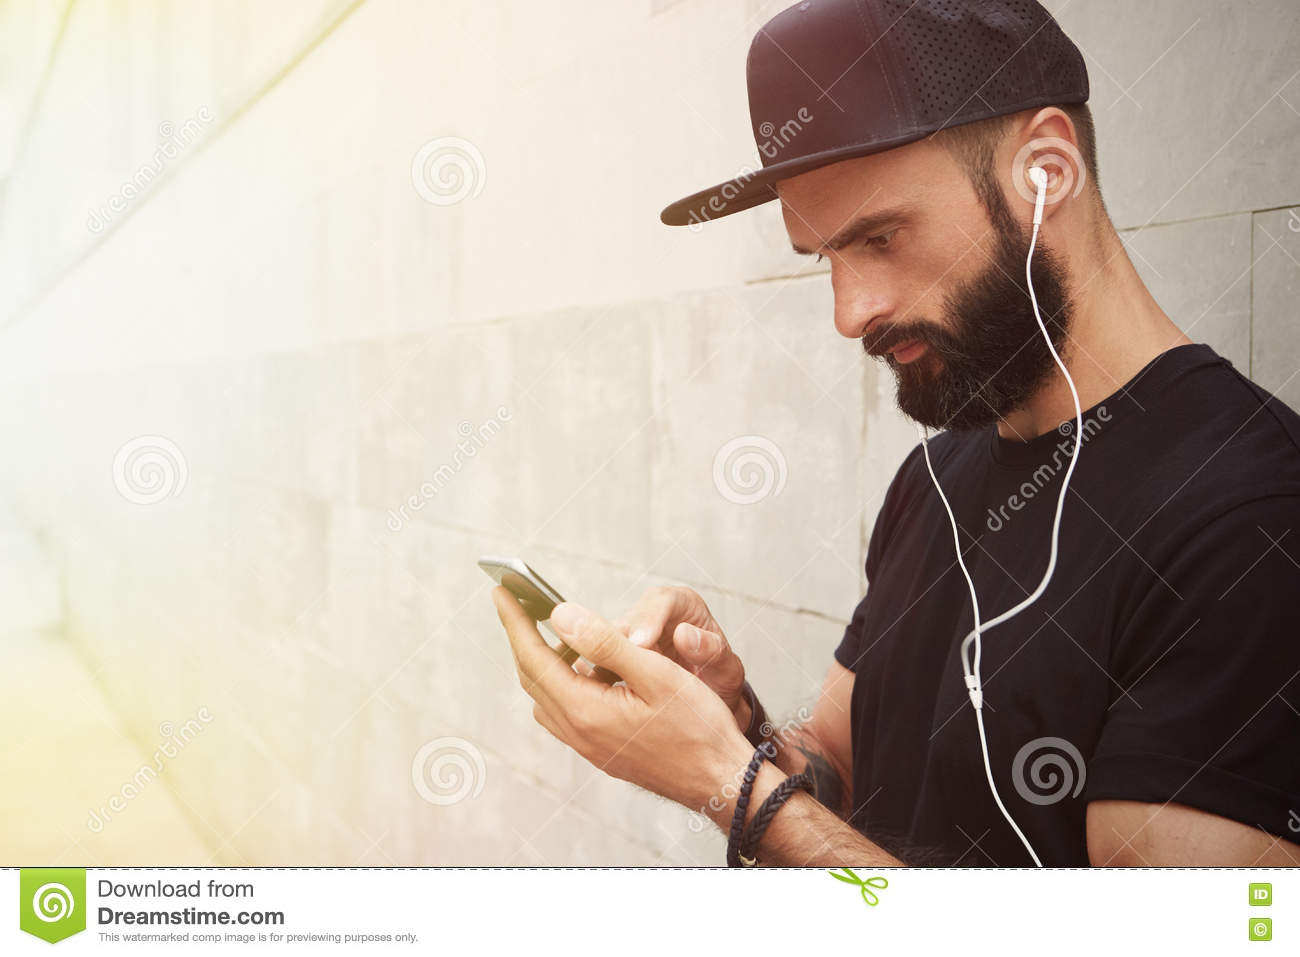 73795e4979c Bearded Muscular Man Wearing Black Tshirt Blank Snapback Cap Summer Time.Young  Men Standing Opposite Empty Gray Concrete Wall Background Using Smartphone  ...